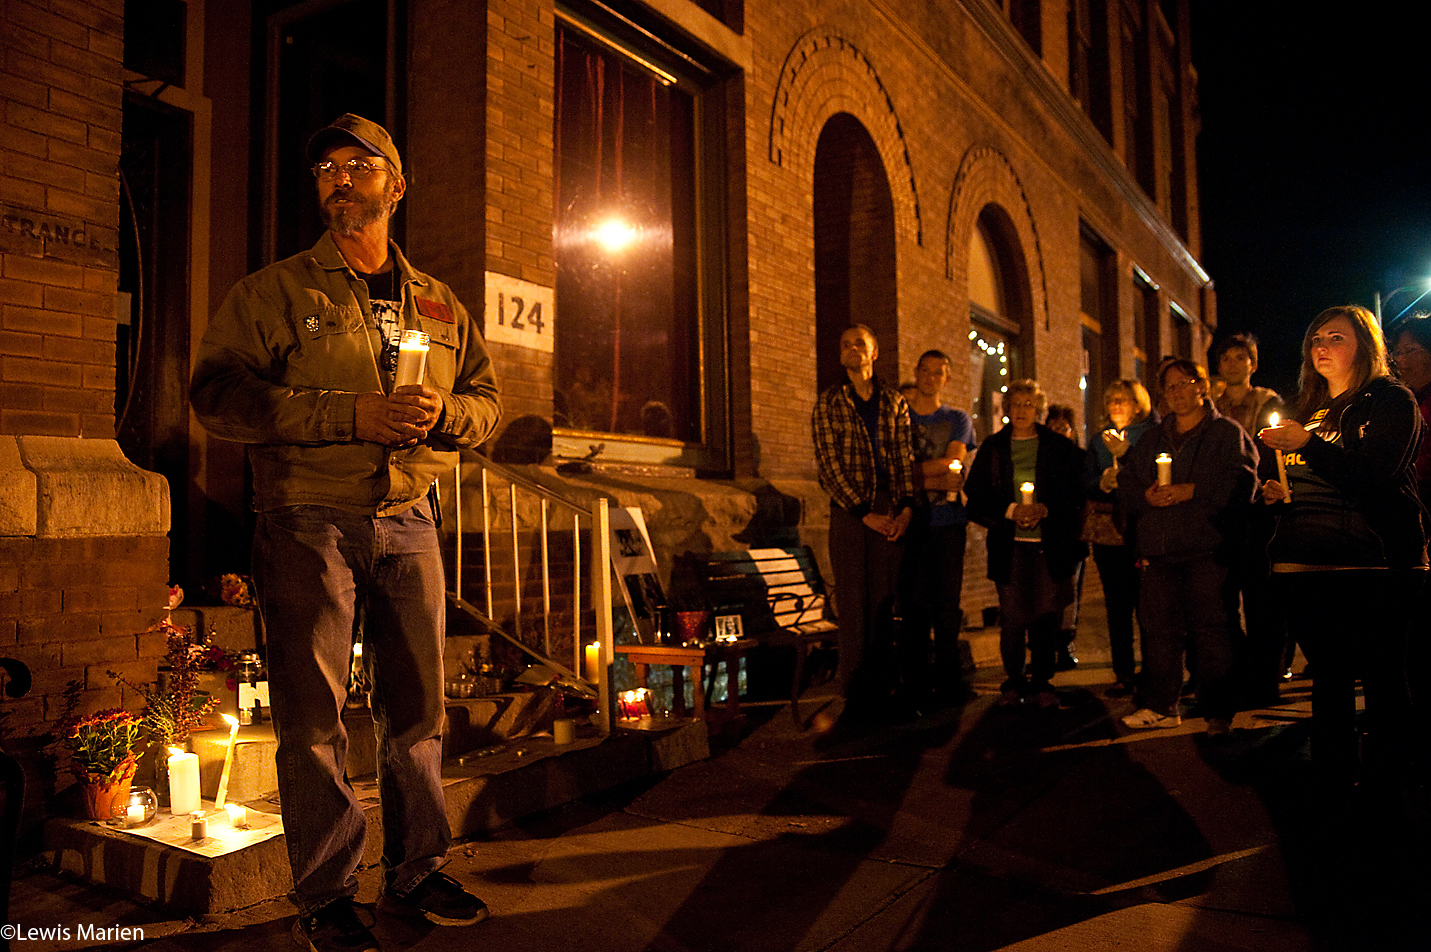 Paul Brechbuhler, left, of Galesburg, Ill., speaks to attendees of a candlelight vigil Nov. 15 outside The Beanhive in Galesburg, Ill. Members of the community attended the candlelight vigil for Sally Christianson, 18, of Wataga, Ill.,who died overnight Nov. 12 in a single-car accident.